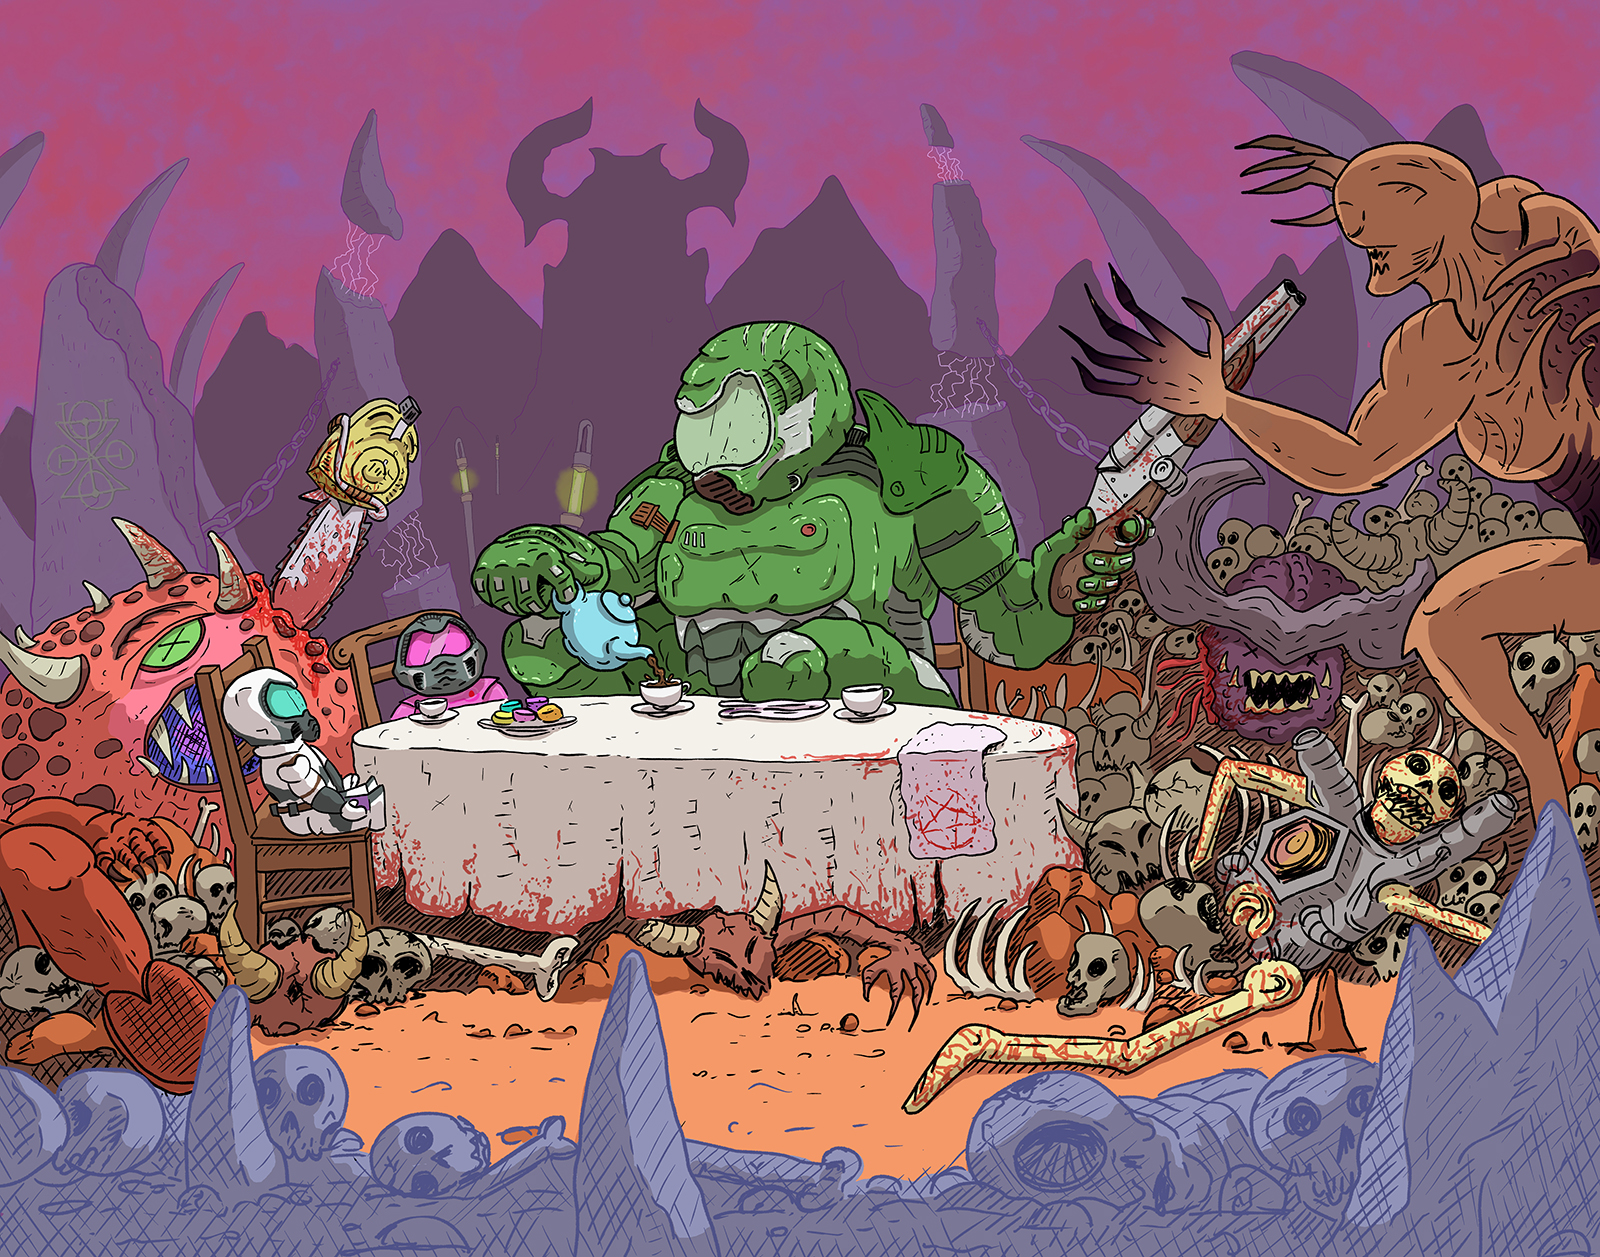 Illustration of the Doom Slayer having a tea party in hell.